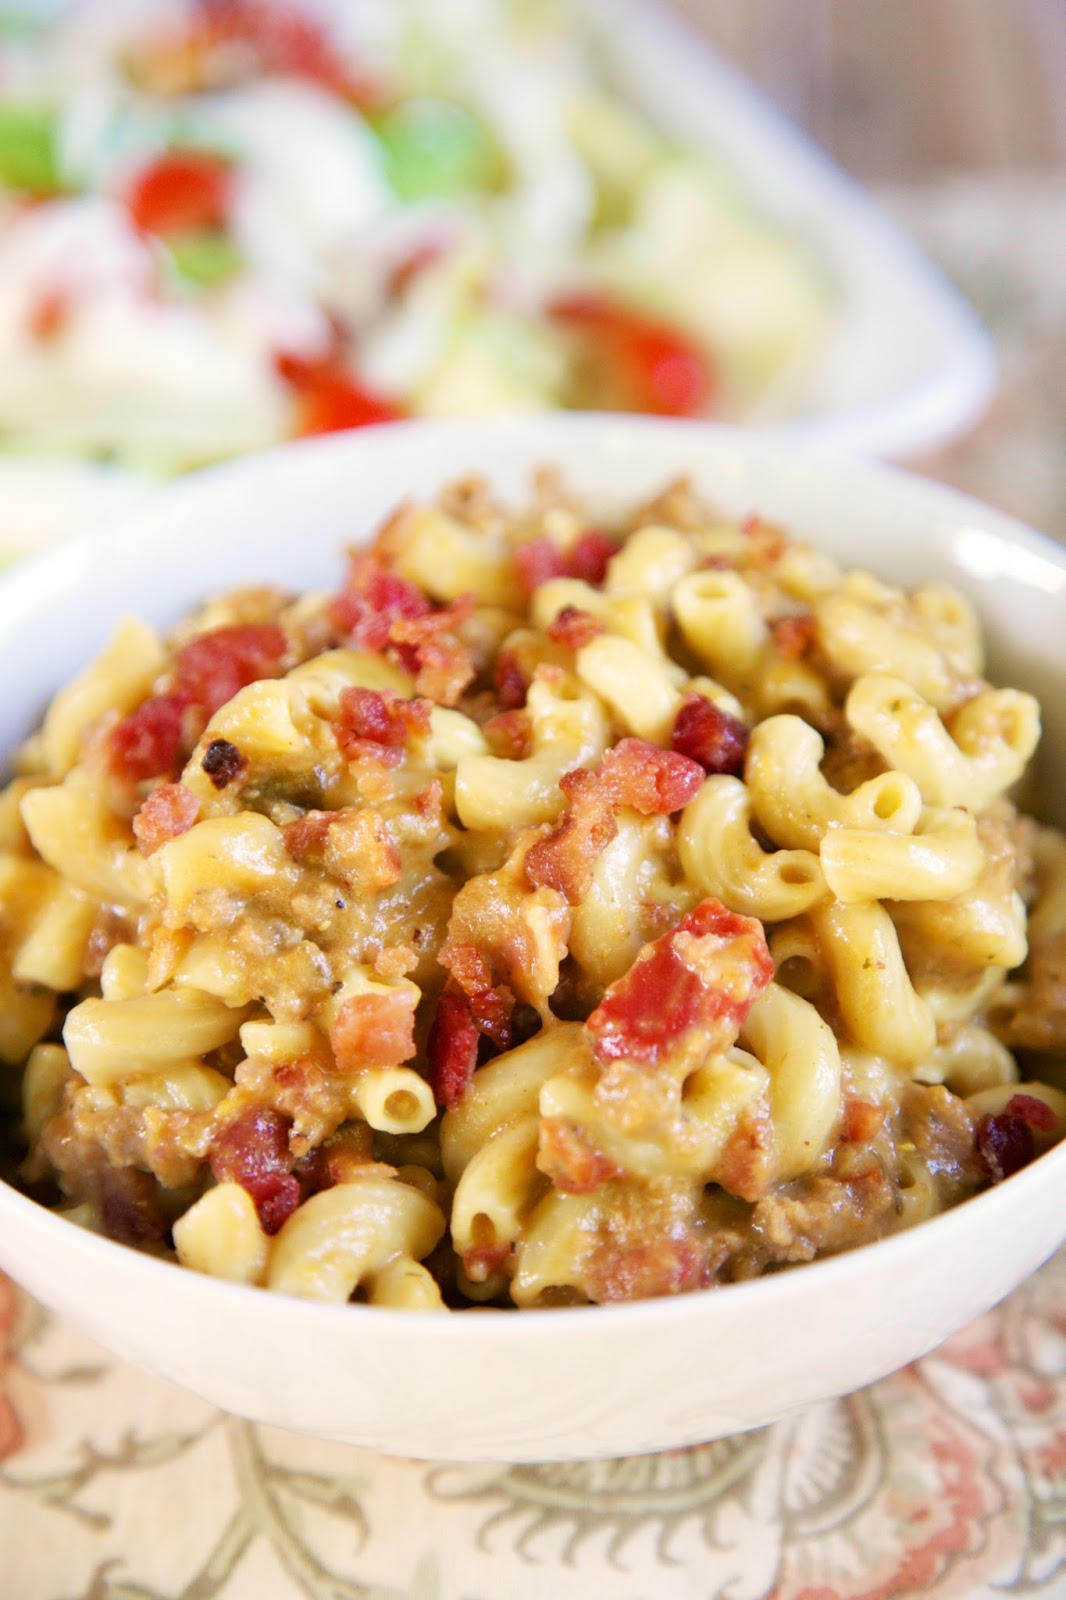 Slow Cooker Bacon Cheeseburger Pasta - FREEZER MEAL - just toss everything in a freezer bag for a quick meal later. Ground beef, bacon, onion, dry mustard, cream of chicken soup, Rotel tomatoes, beef broth, cheddar cheese and elbow macaroni. Kids go crazy over this easy slow cooker meal! No need to pre cook the ground beef or pre cook the pasta. It all cooks in the slow cooker. #slowcooker #freezermeal #groundbeef